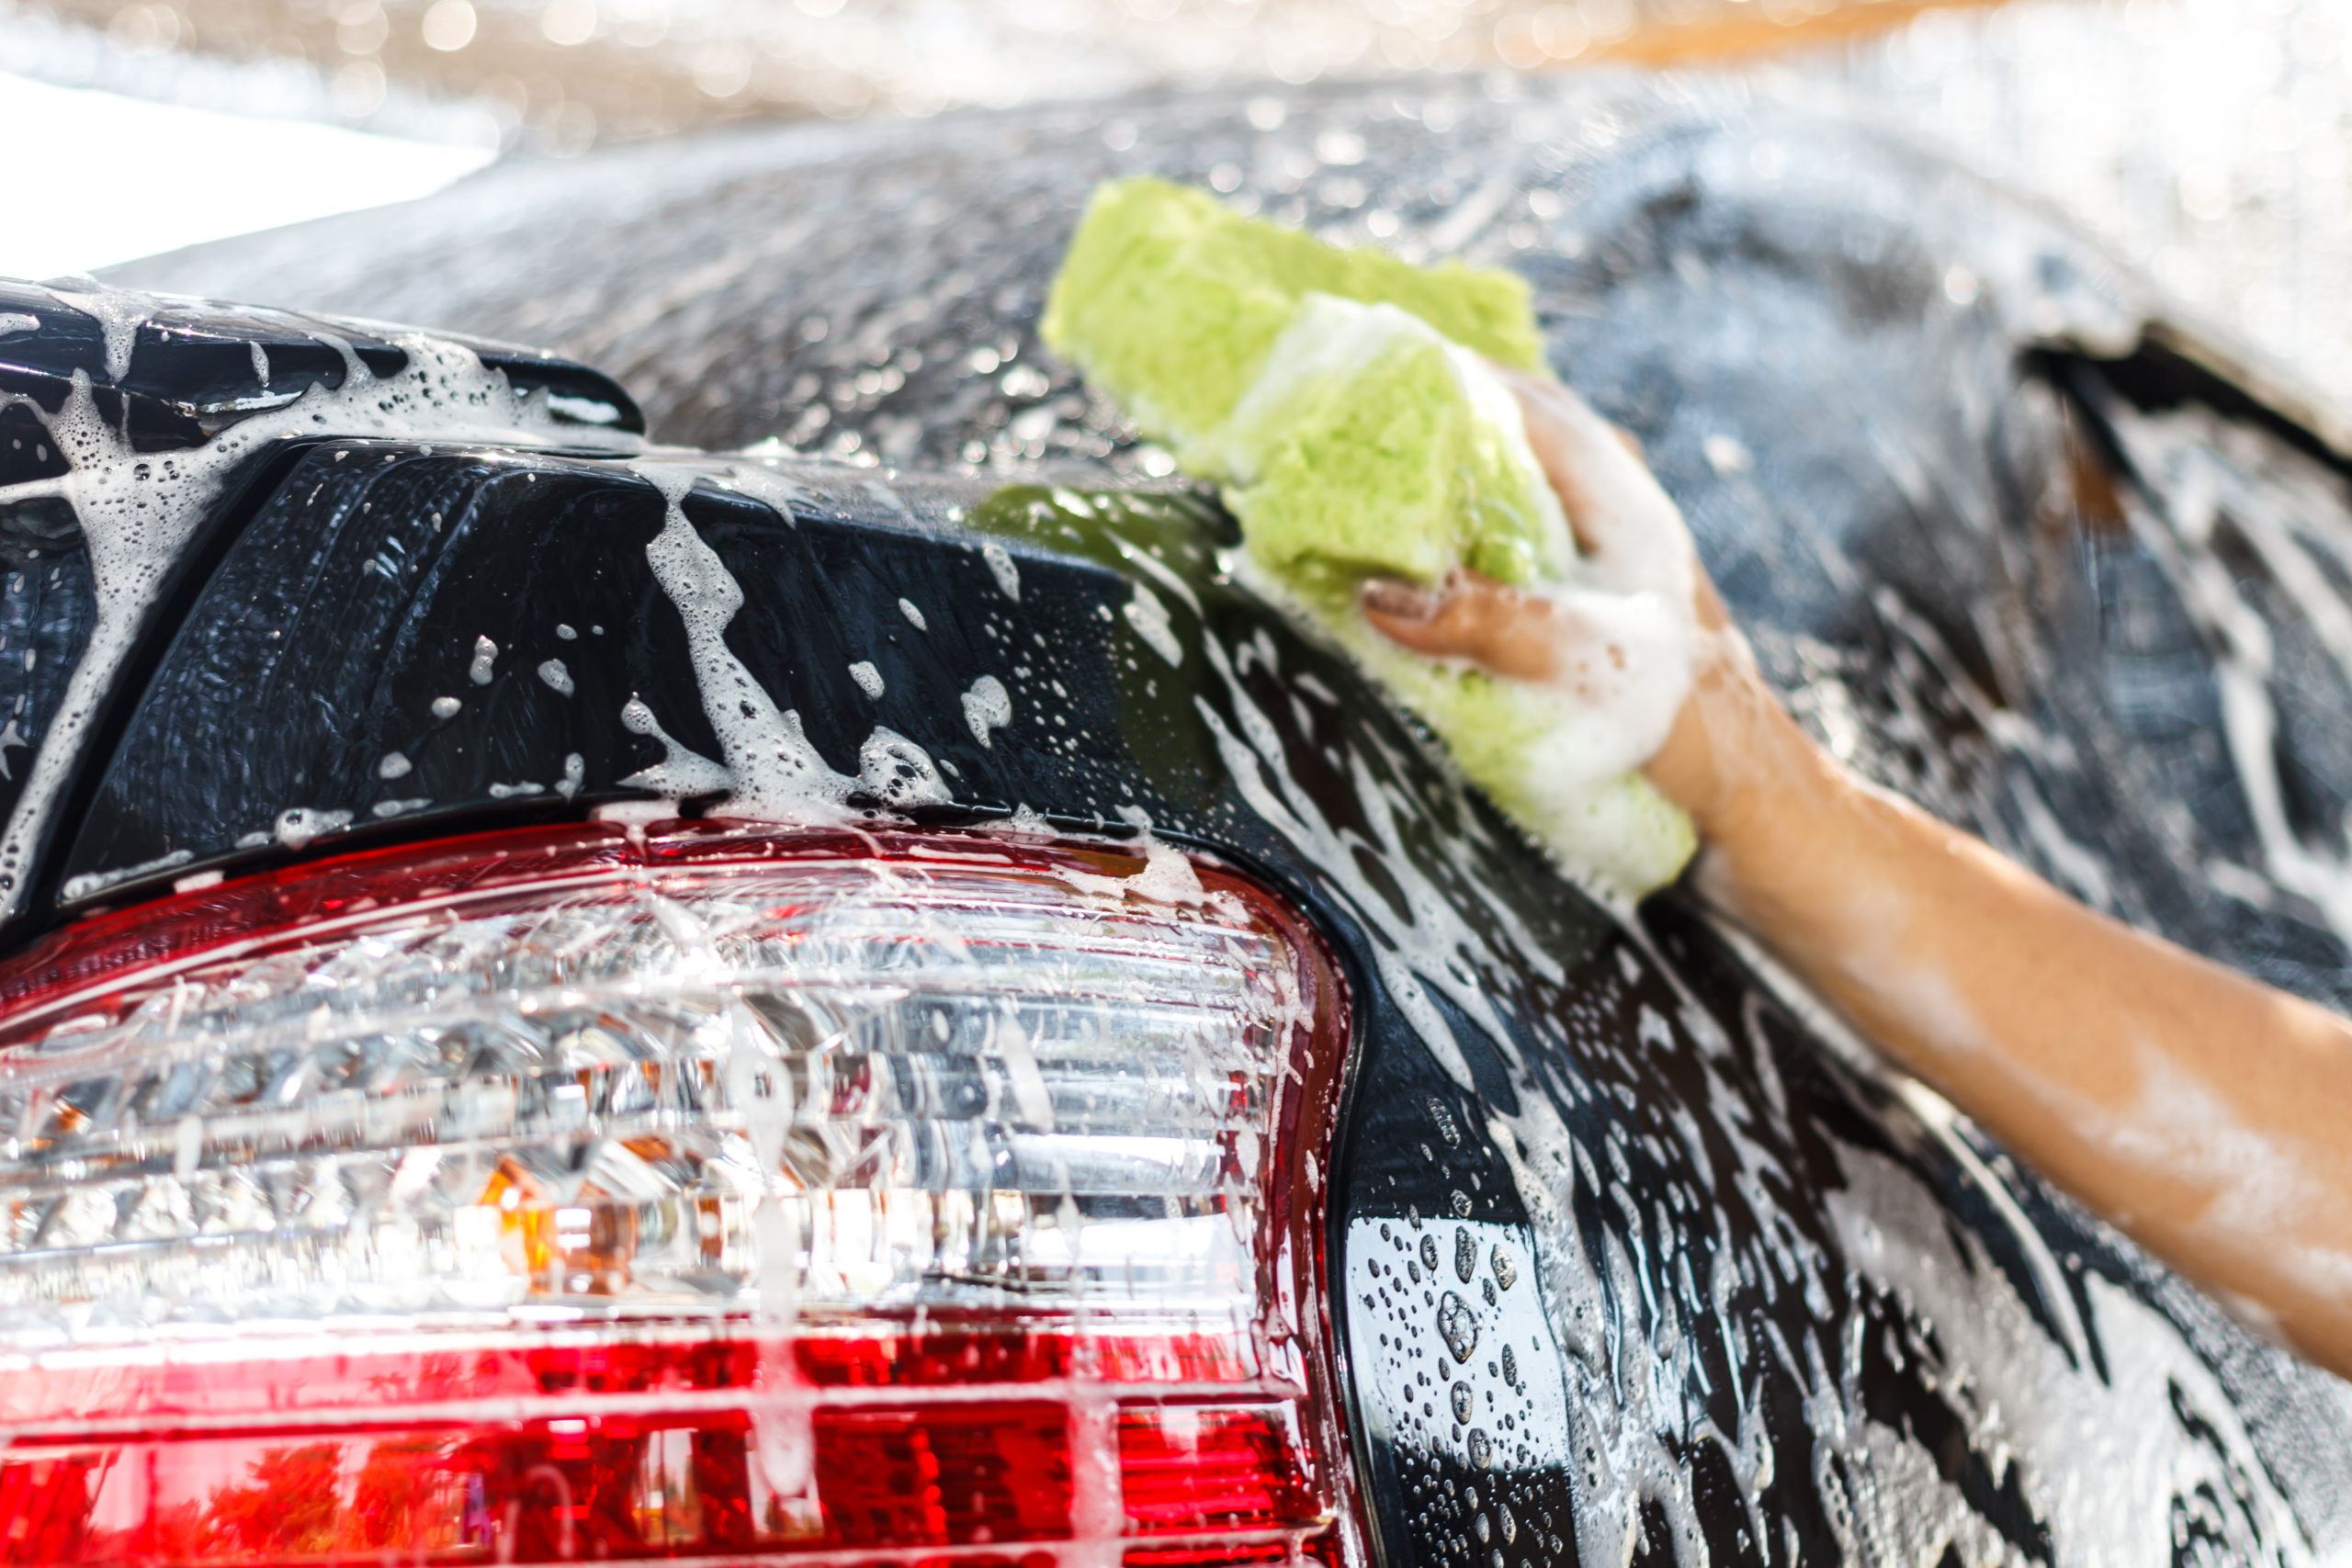 how to detail your car - soaping car up with sponge